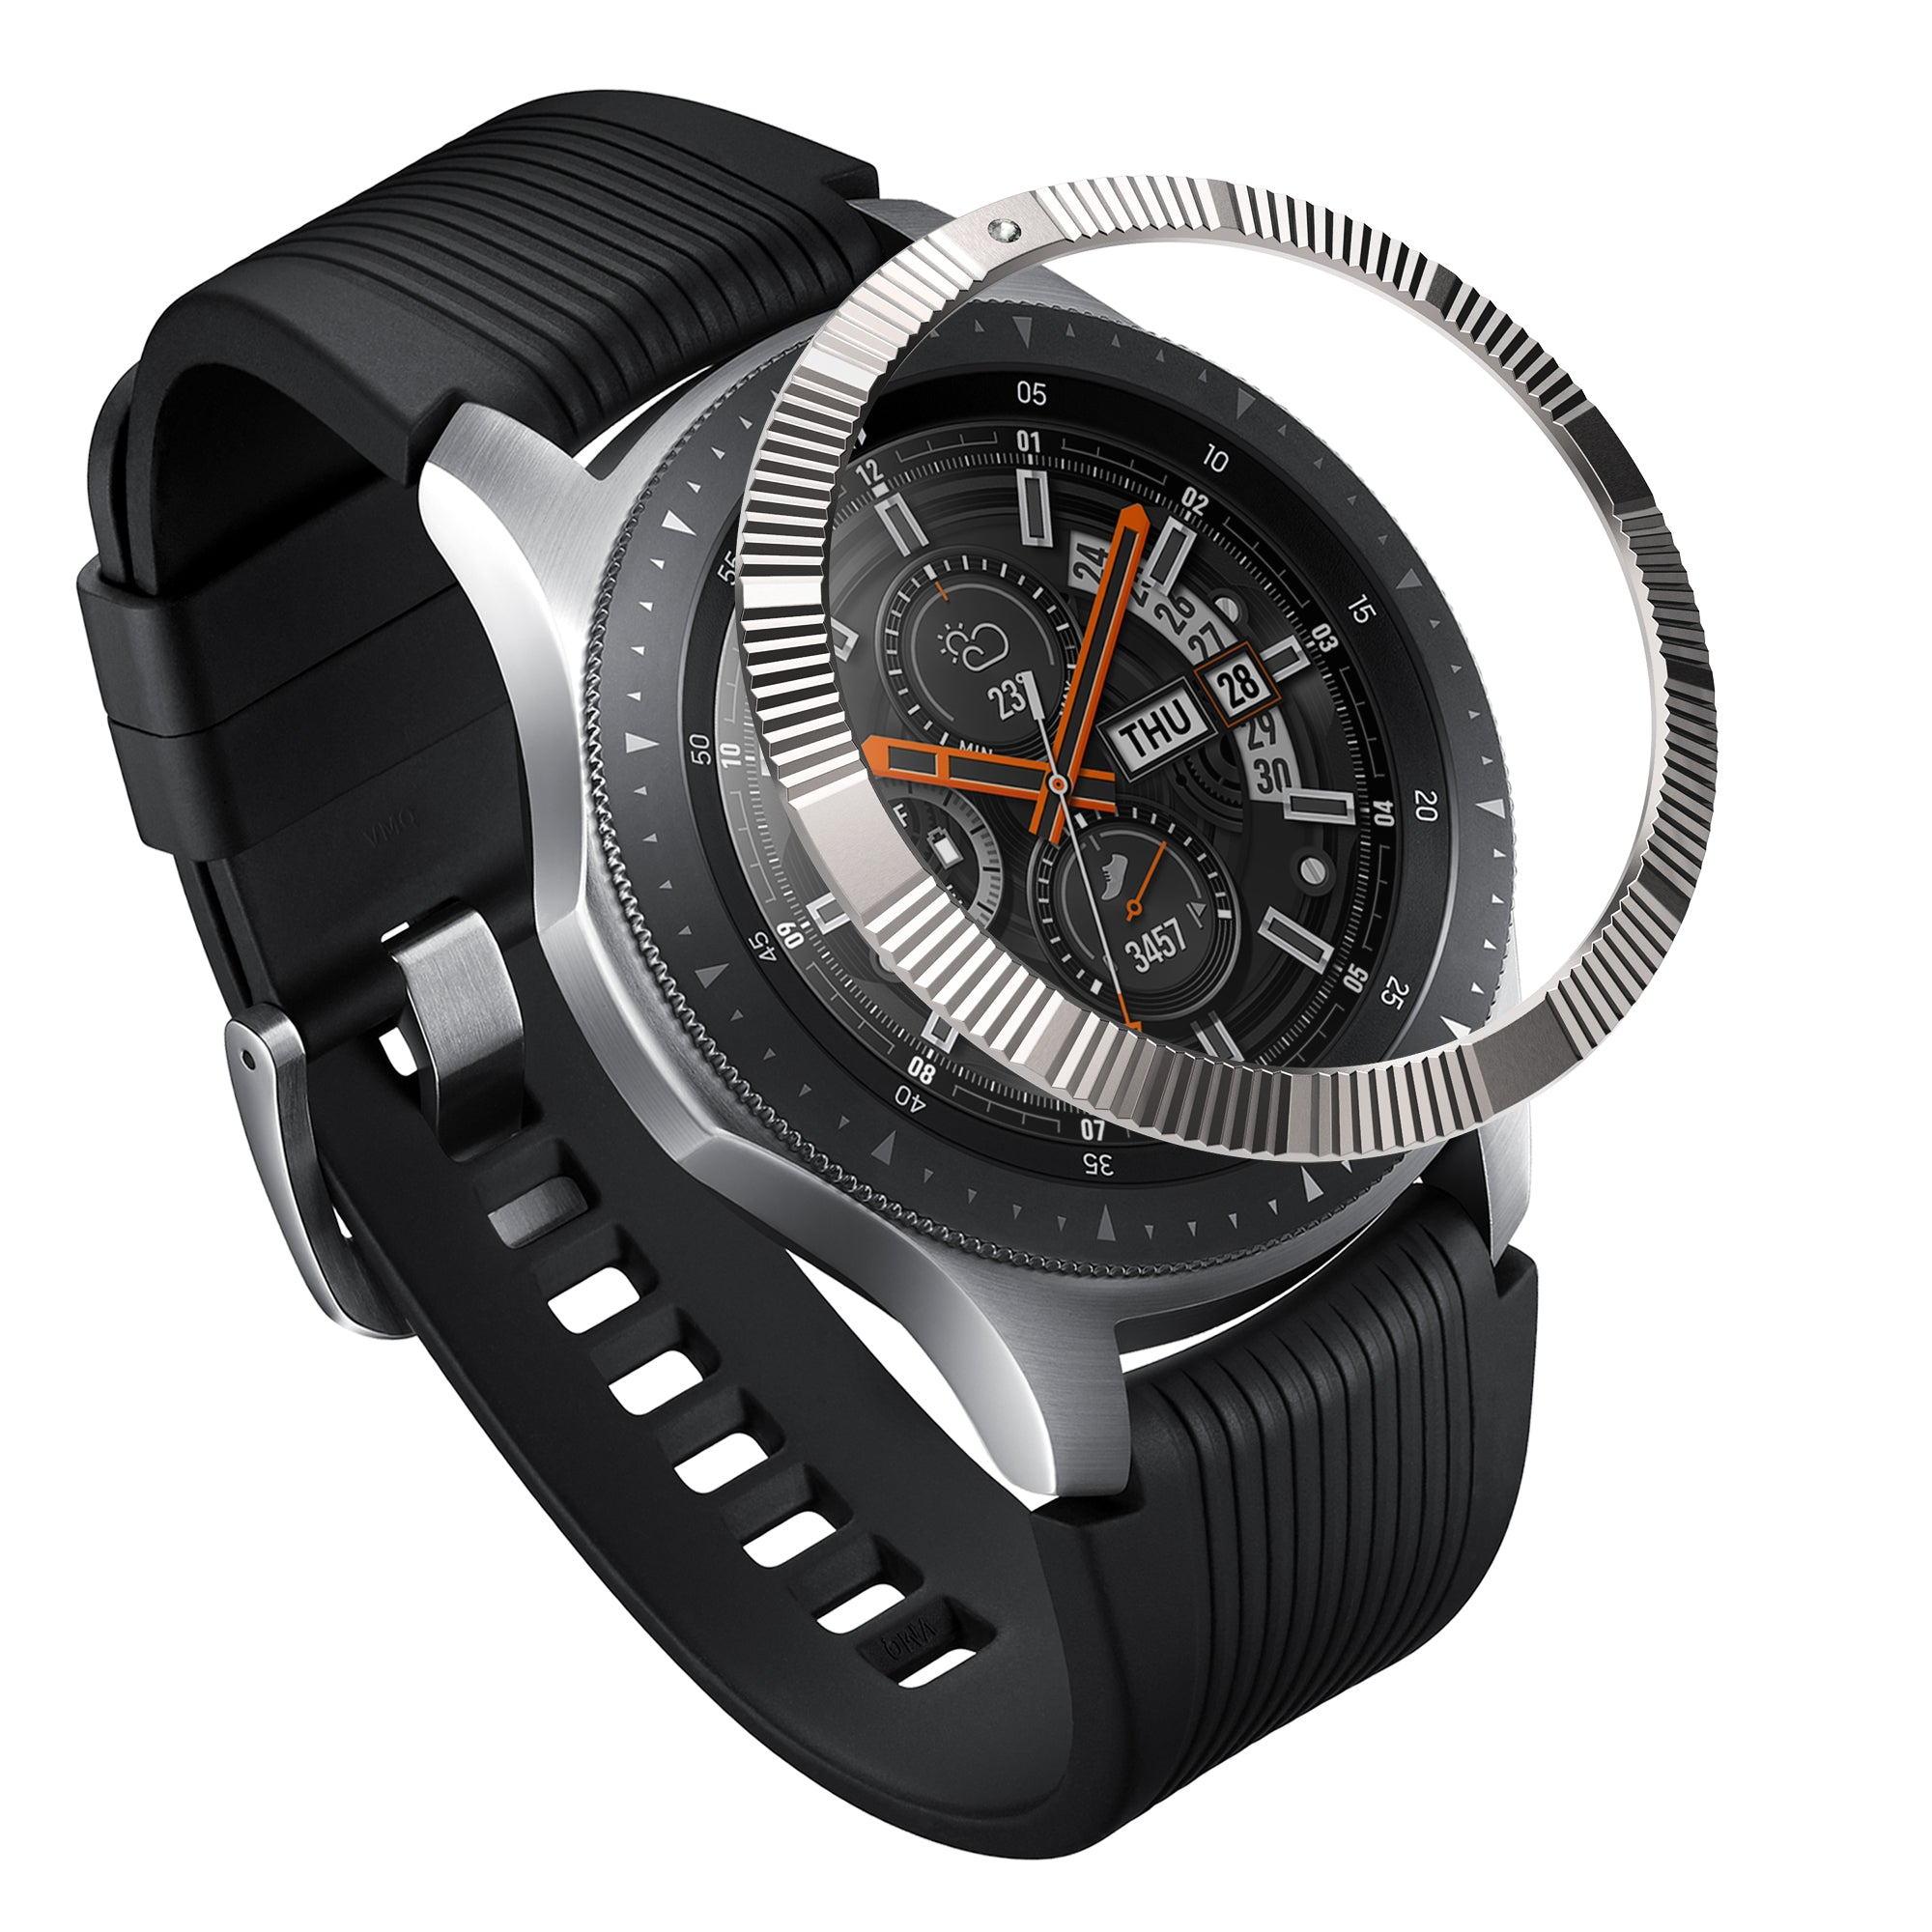 ringke bezel styling for samsung galaxy watch 46mm, gear s3 frontier and classic superior edition